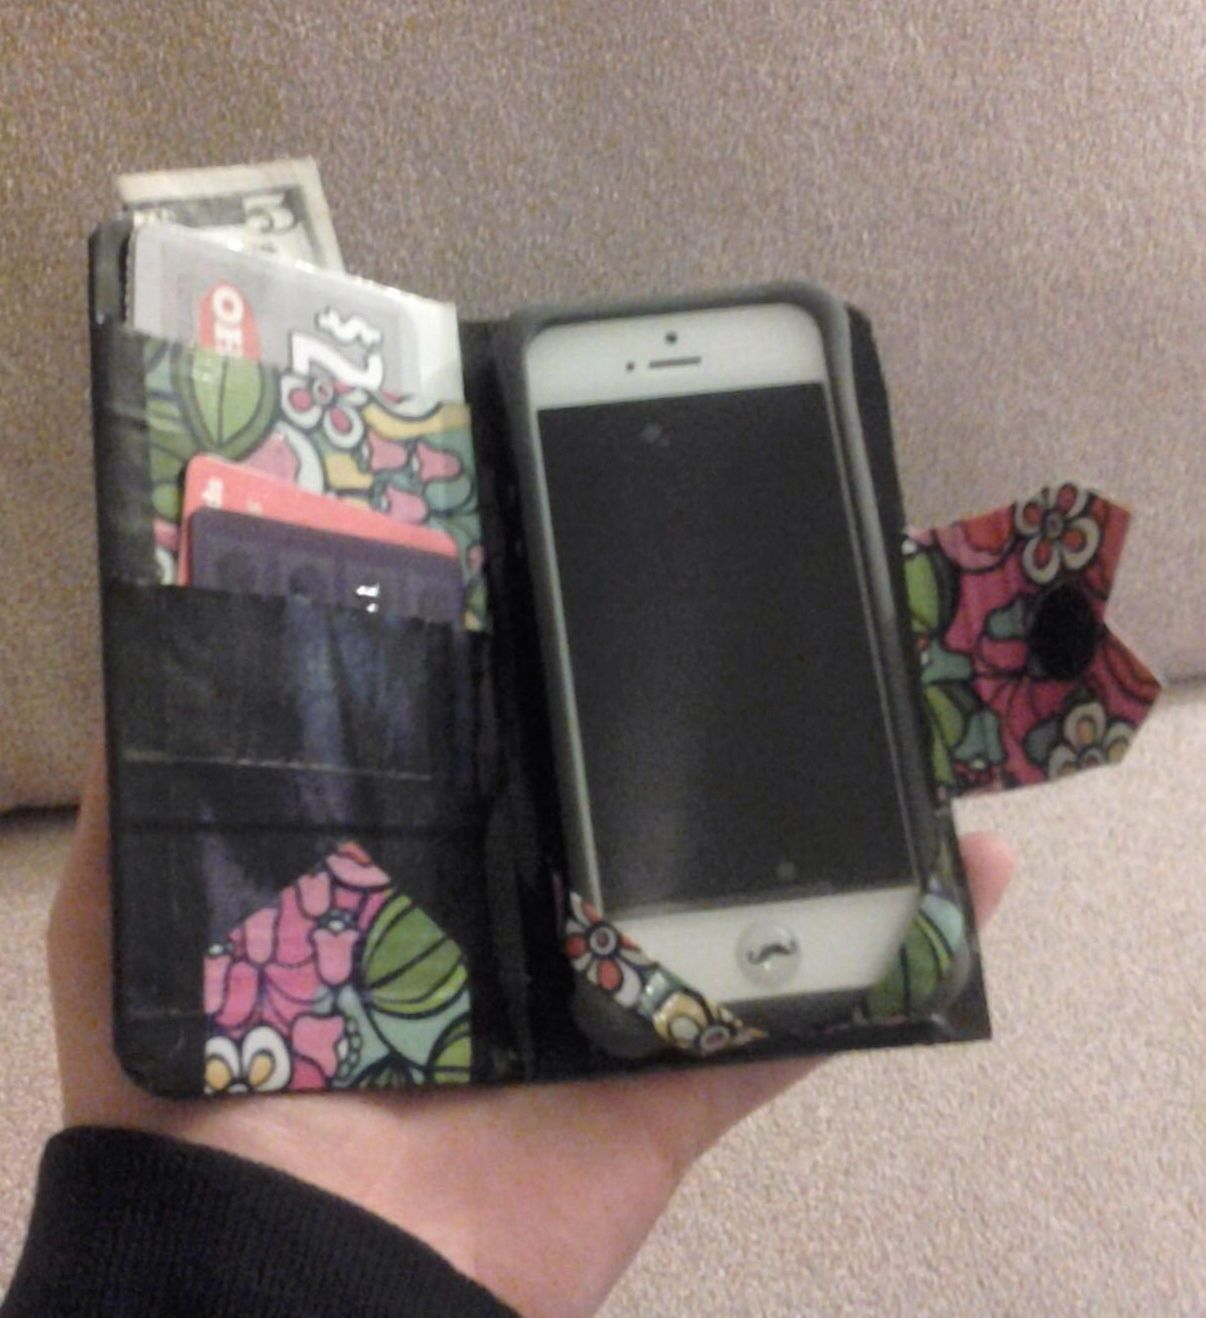 Duct Tape Credit Card Holder With Phone Duct Tape Crafts Duck Tape Crafts Duct Tape